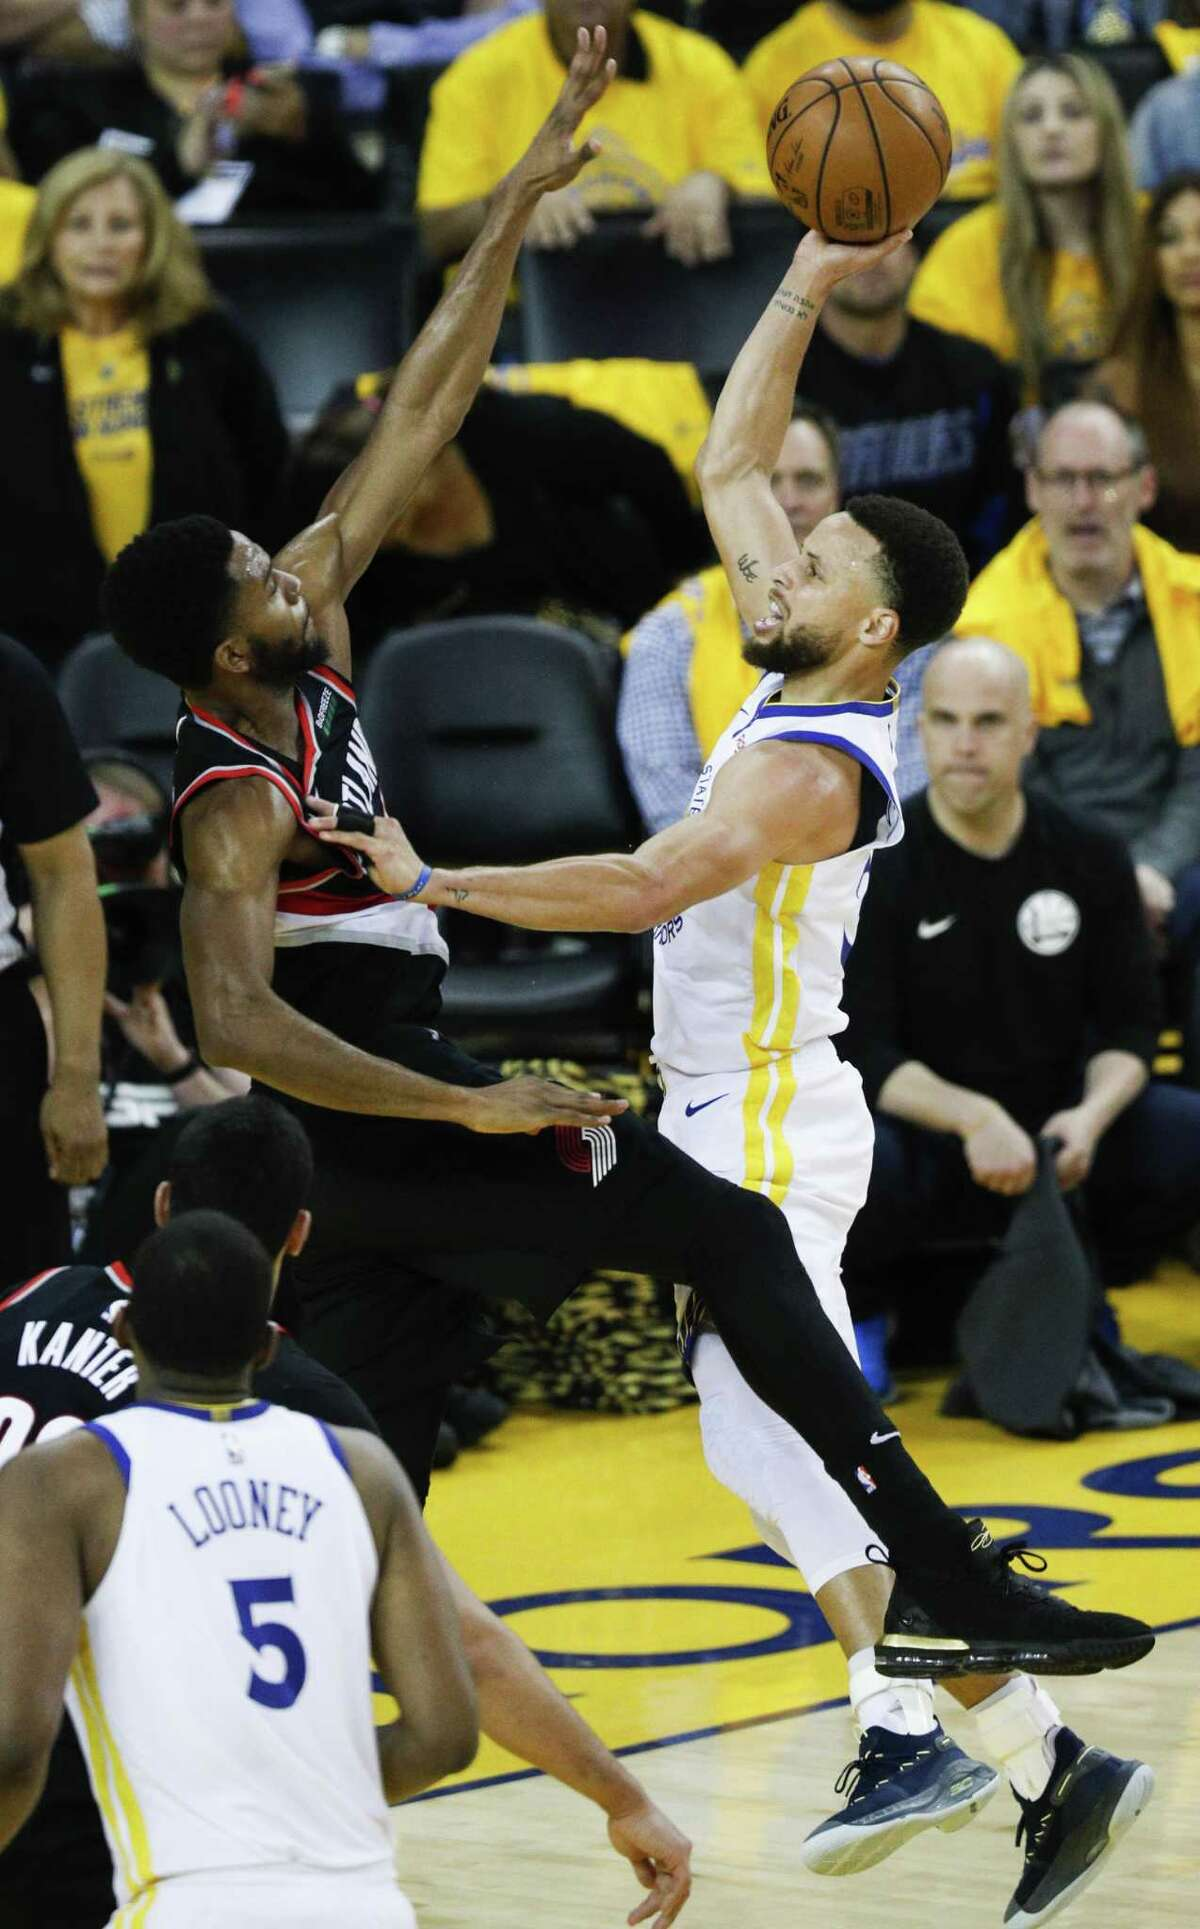 Golden State Warriors Stephen Curry goes up against Portland Trail Blazers Maurice Harkless in the third quarter during game 1 of the Western Conference Finals between the Golden State Warriors and the Portland Trail Blazers at Oracle Arena on Tuesday, May 14, 2019 in Oakland, Calif.